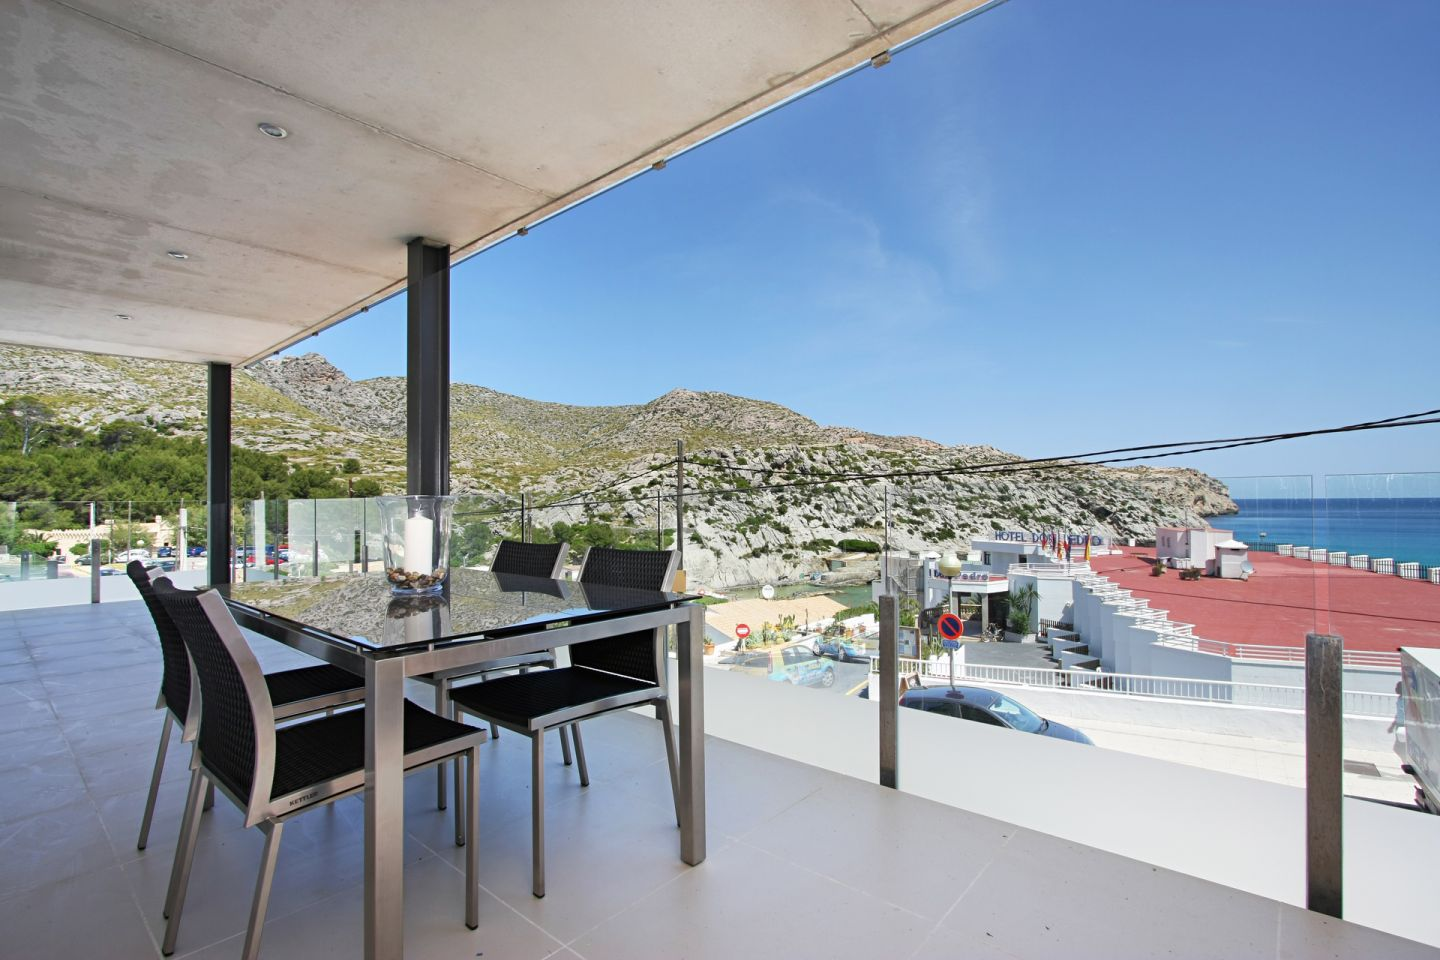 2 Bed Other for sale in Cala San Vicente 8